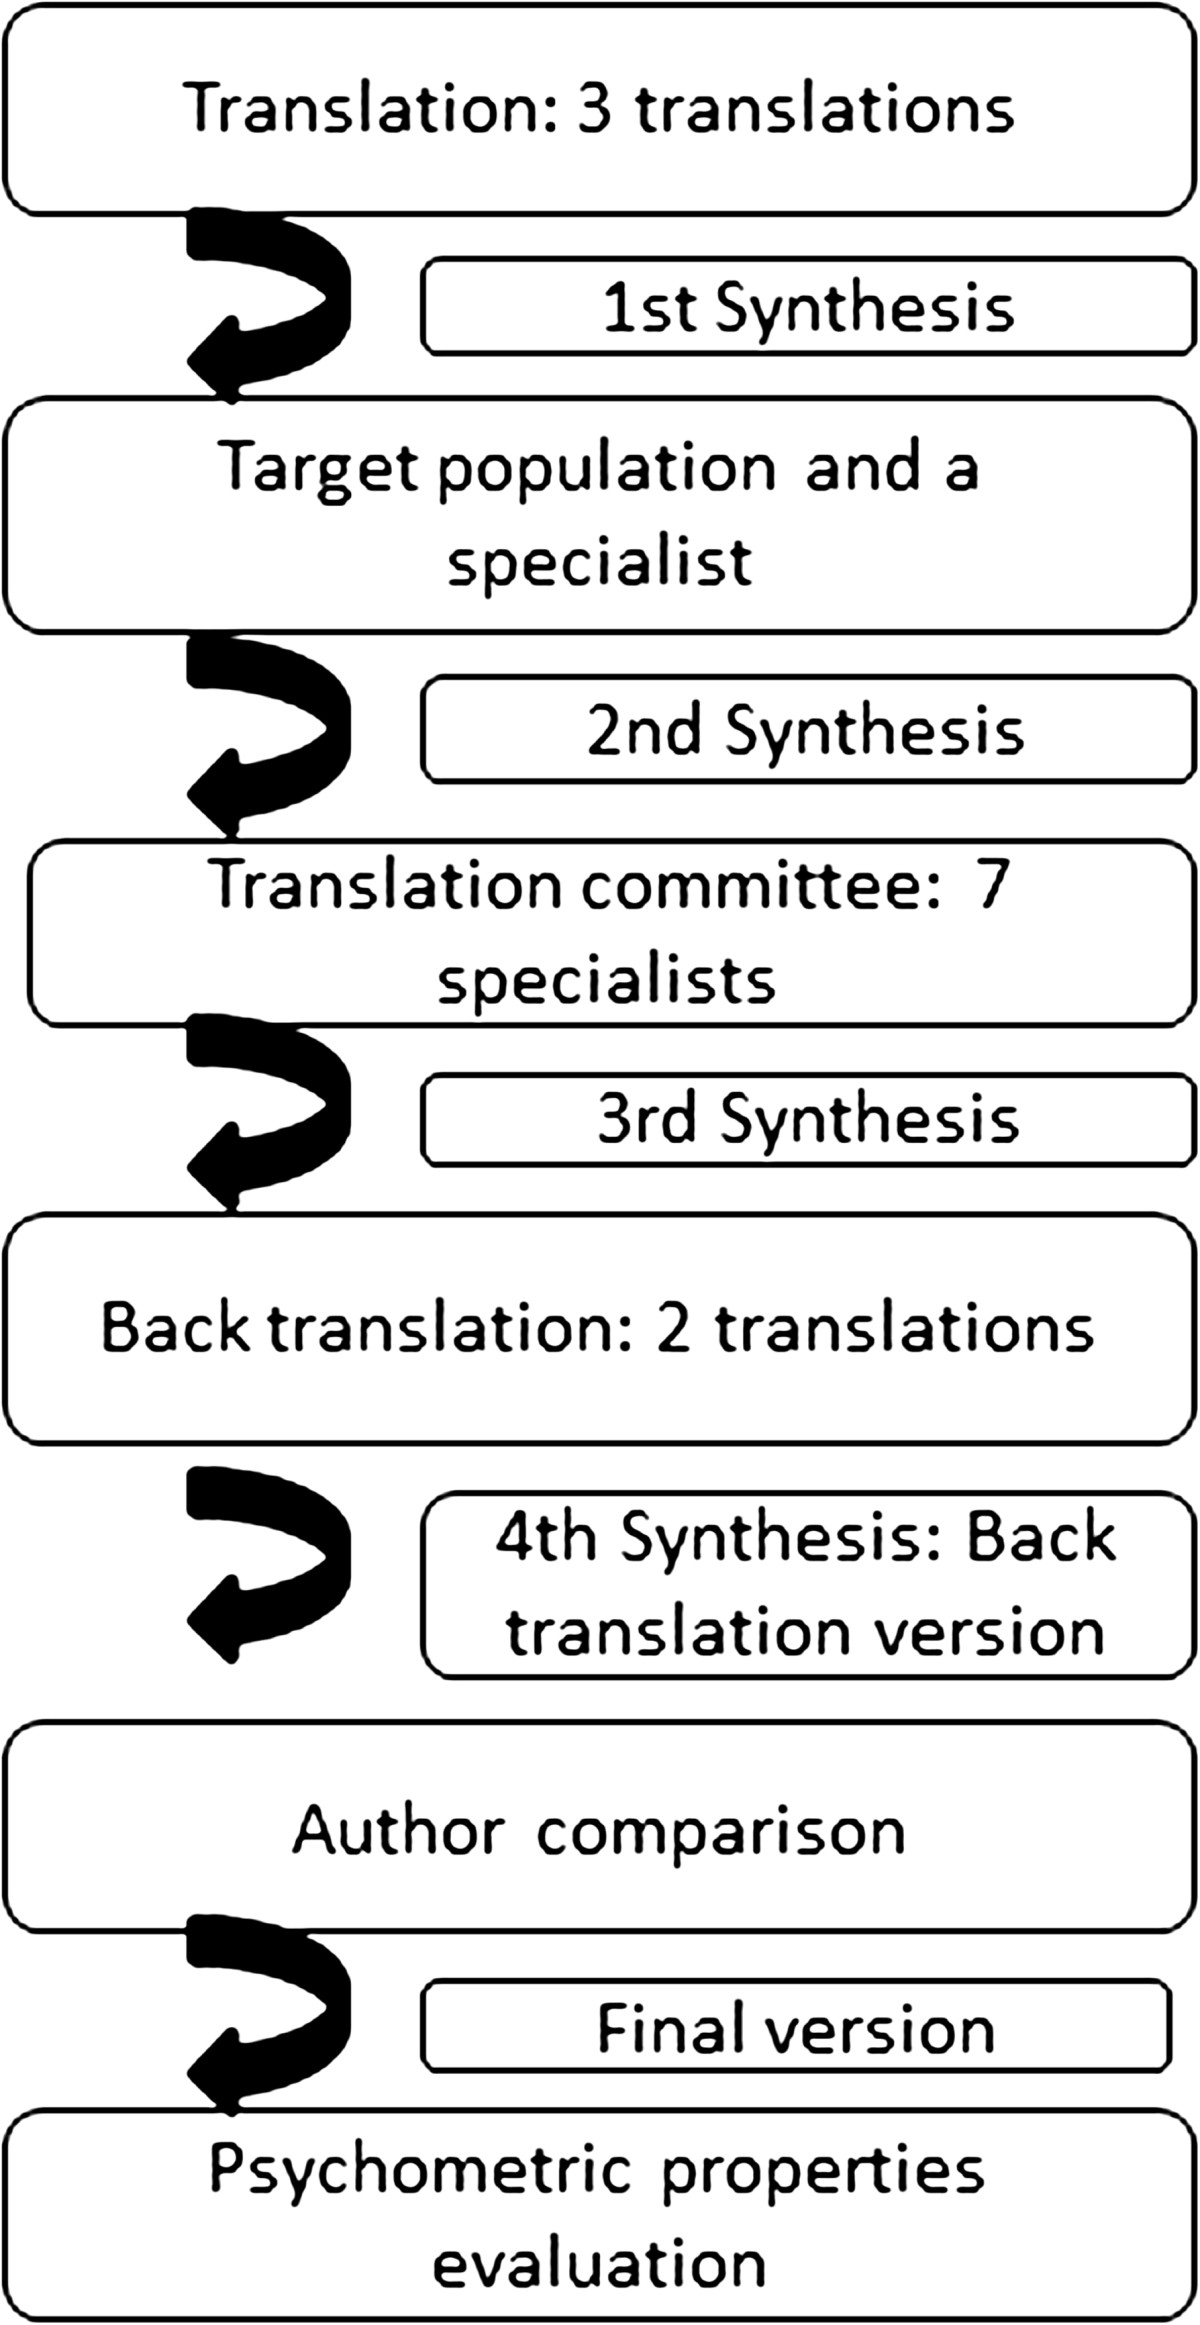 http://static-content.springer.com/image/art%3A10.1186%2F1477-7525-11-4/MediaObjects/12955_2012_Article_1055_Fig1_HTML.jpg